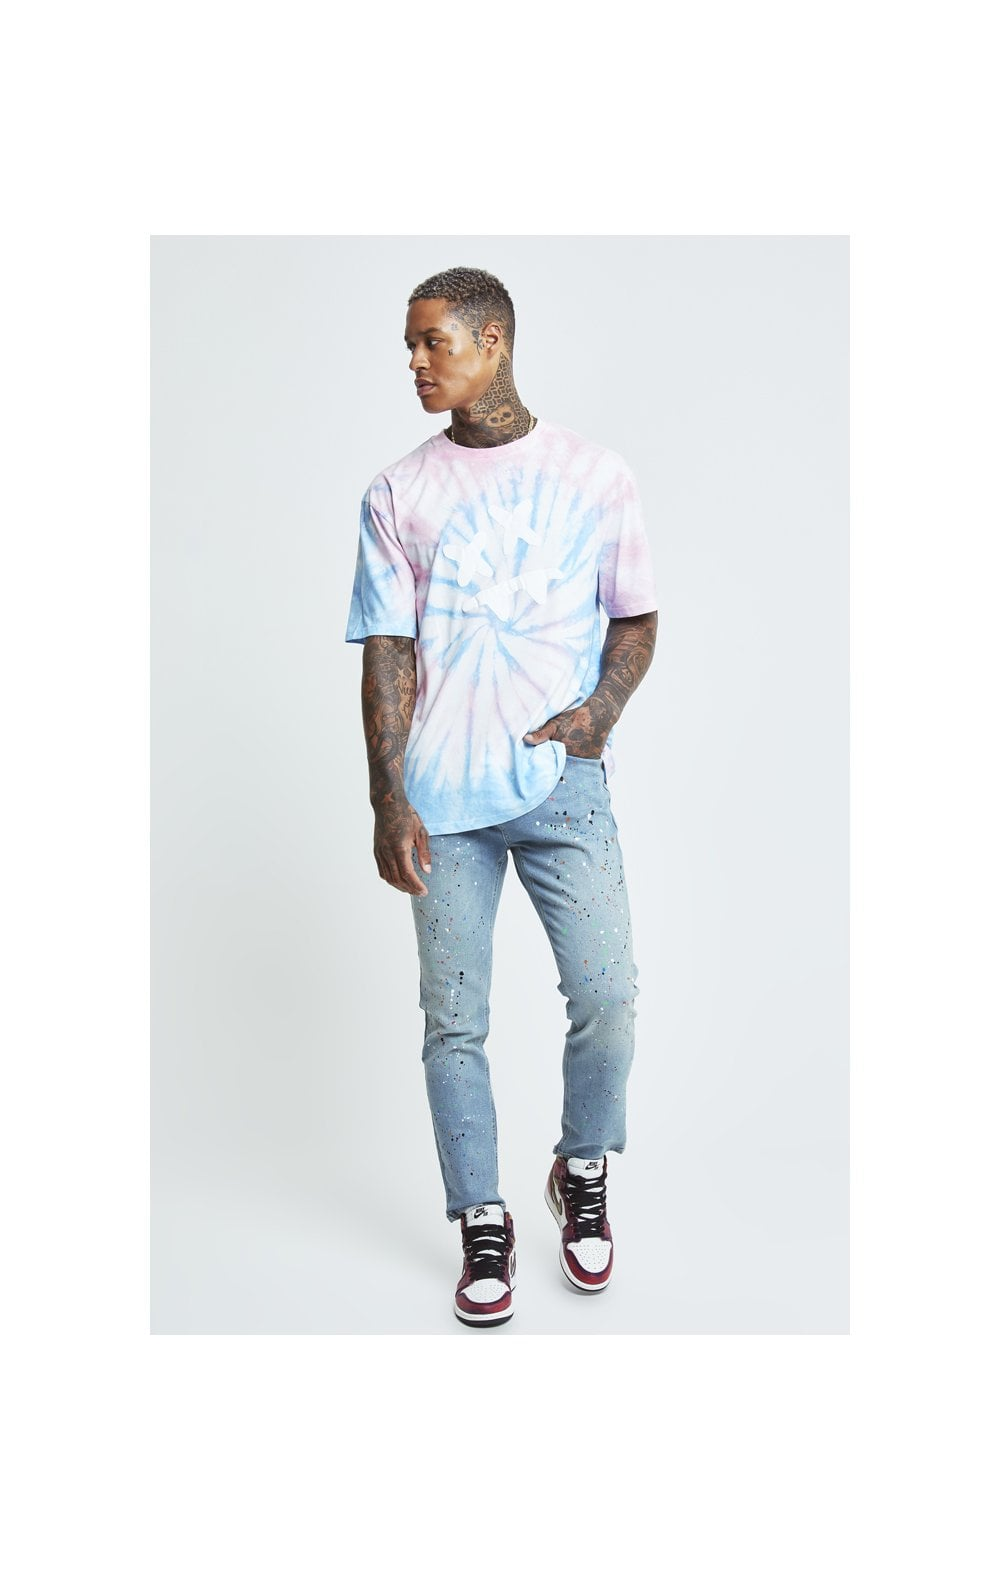 Load image into Gallery viewer, SikSilk X Steve Aoki Loose Fit Riot Denims - Light Wash (2)